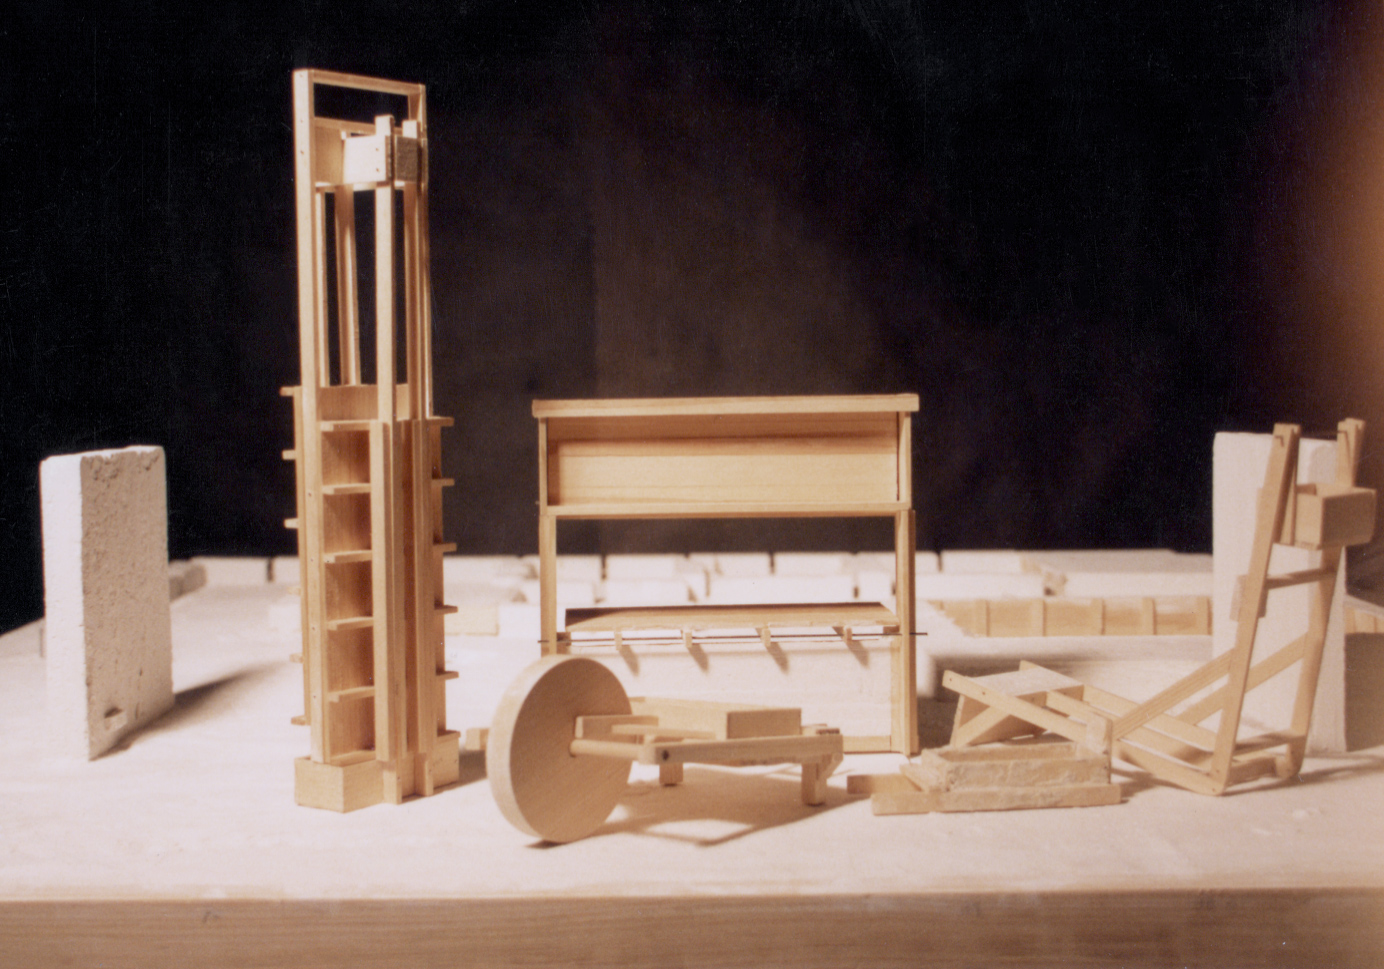 UPenn Integrated Design Thesis: Wood and Plaster Experiment 6. 1992